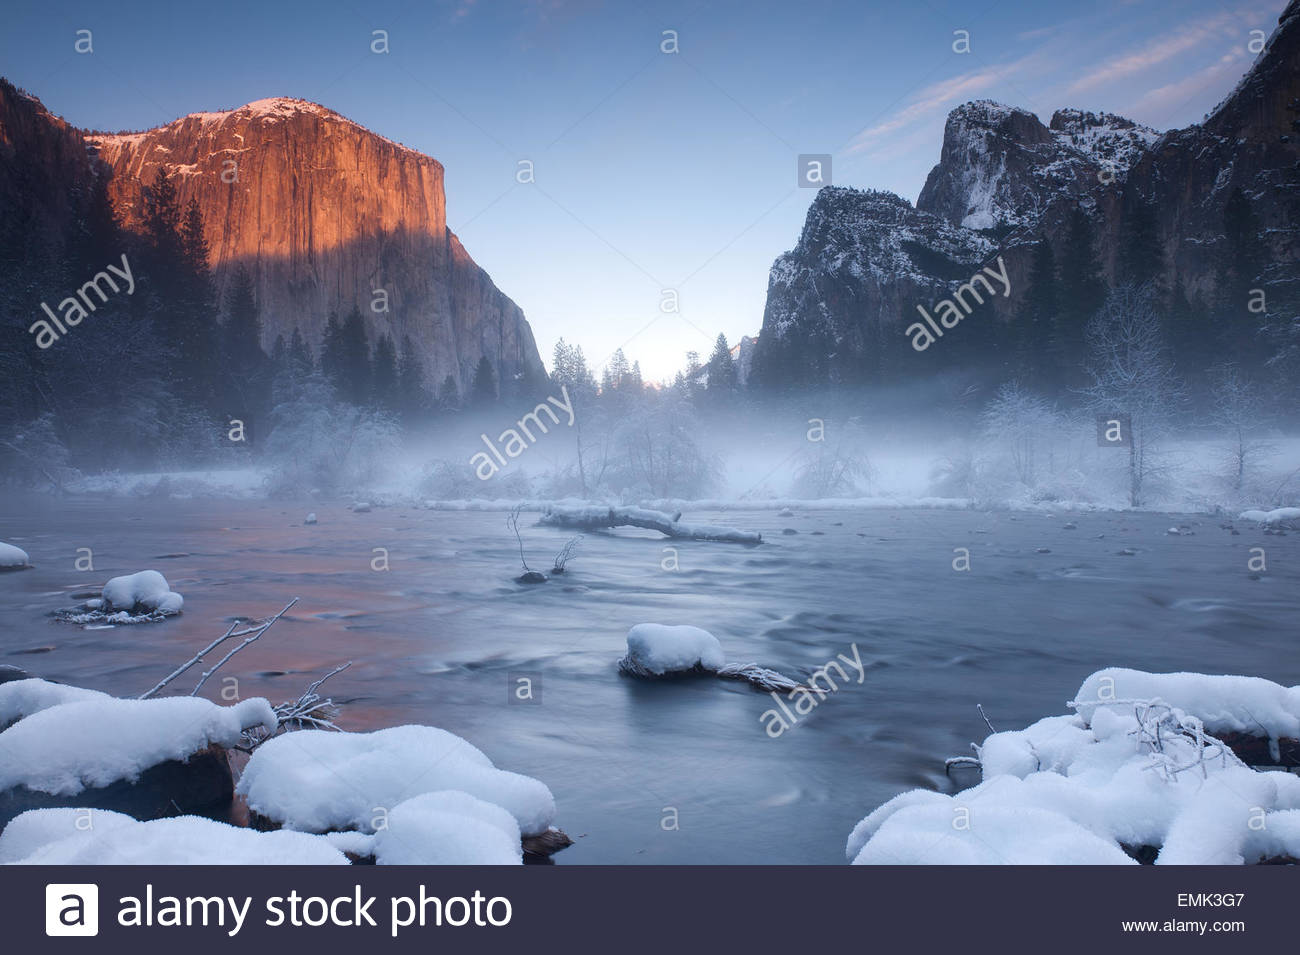 View of hot spring with rocky mountains in background - Stock Image